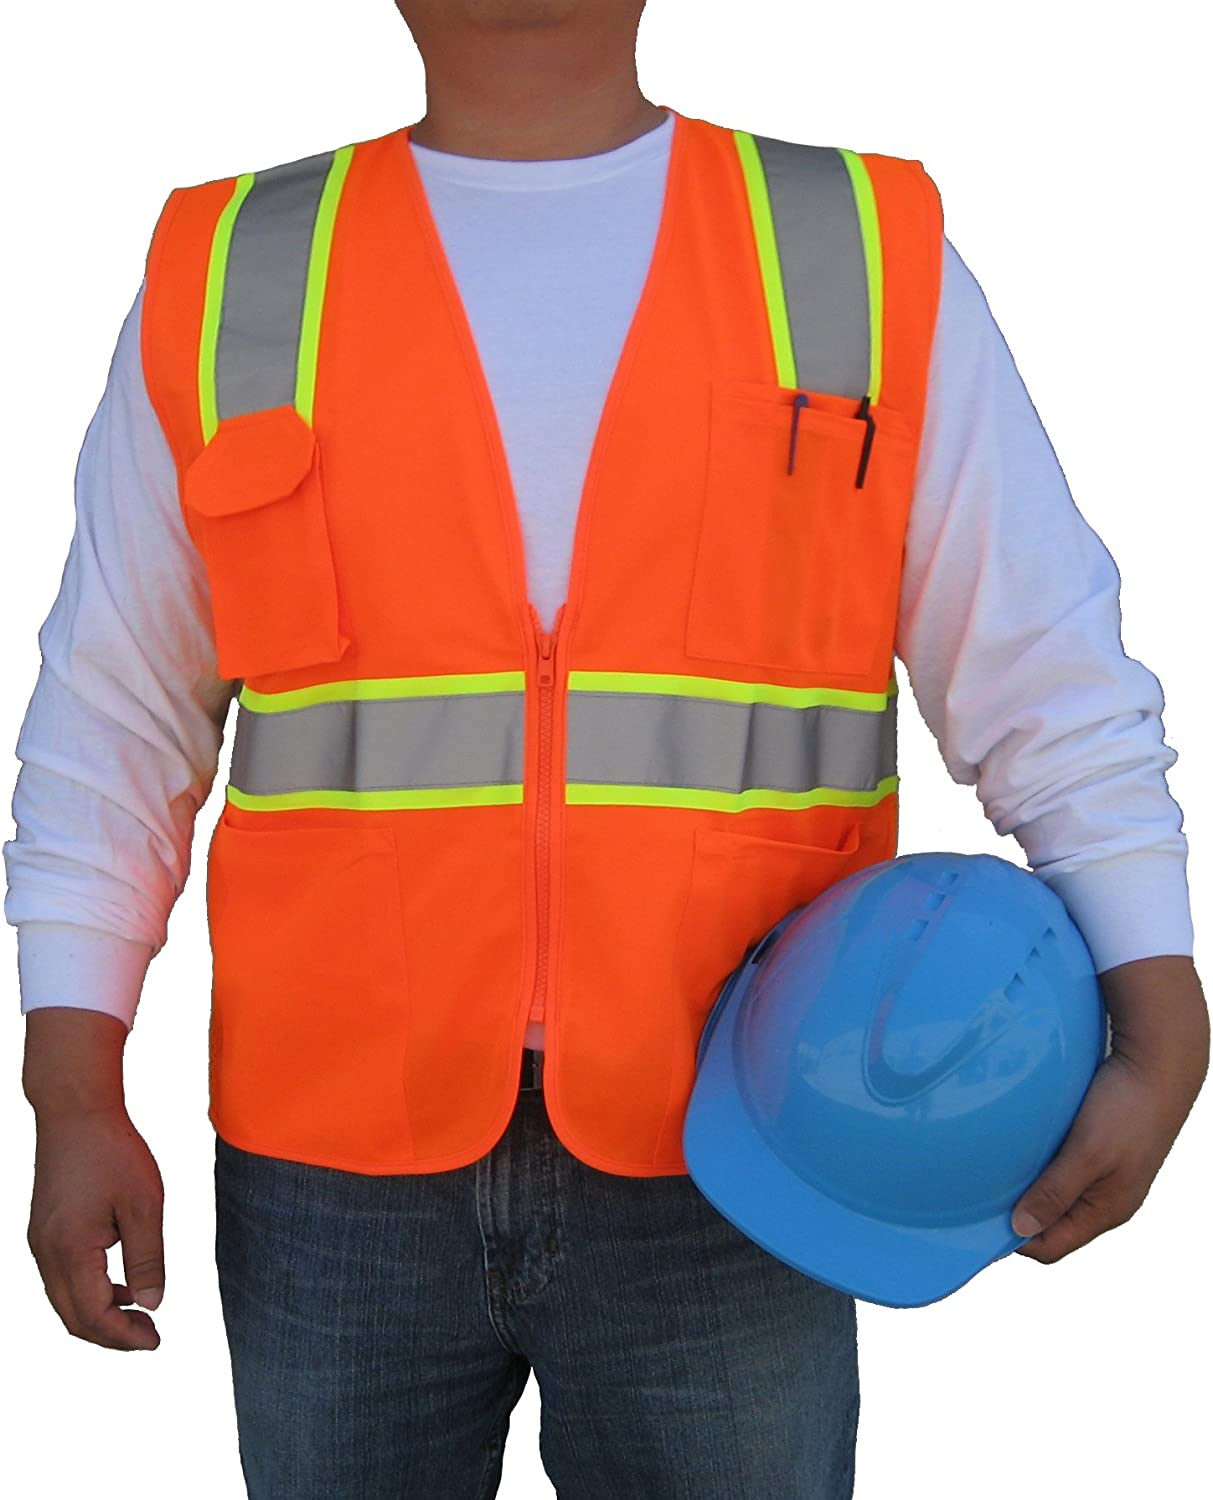 3C Products SV2400, ANSI/ISEA Class 2, Safety Tricot/Mesh Vest, Reflective w/Yellow Binding, Zipper, Pockets, Neon Orange